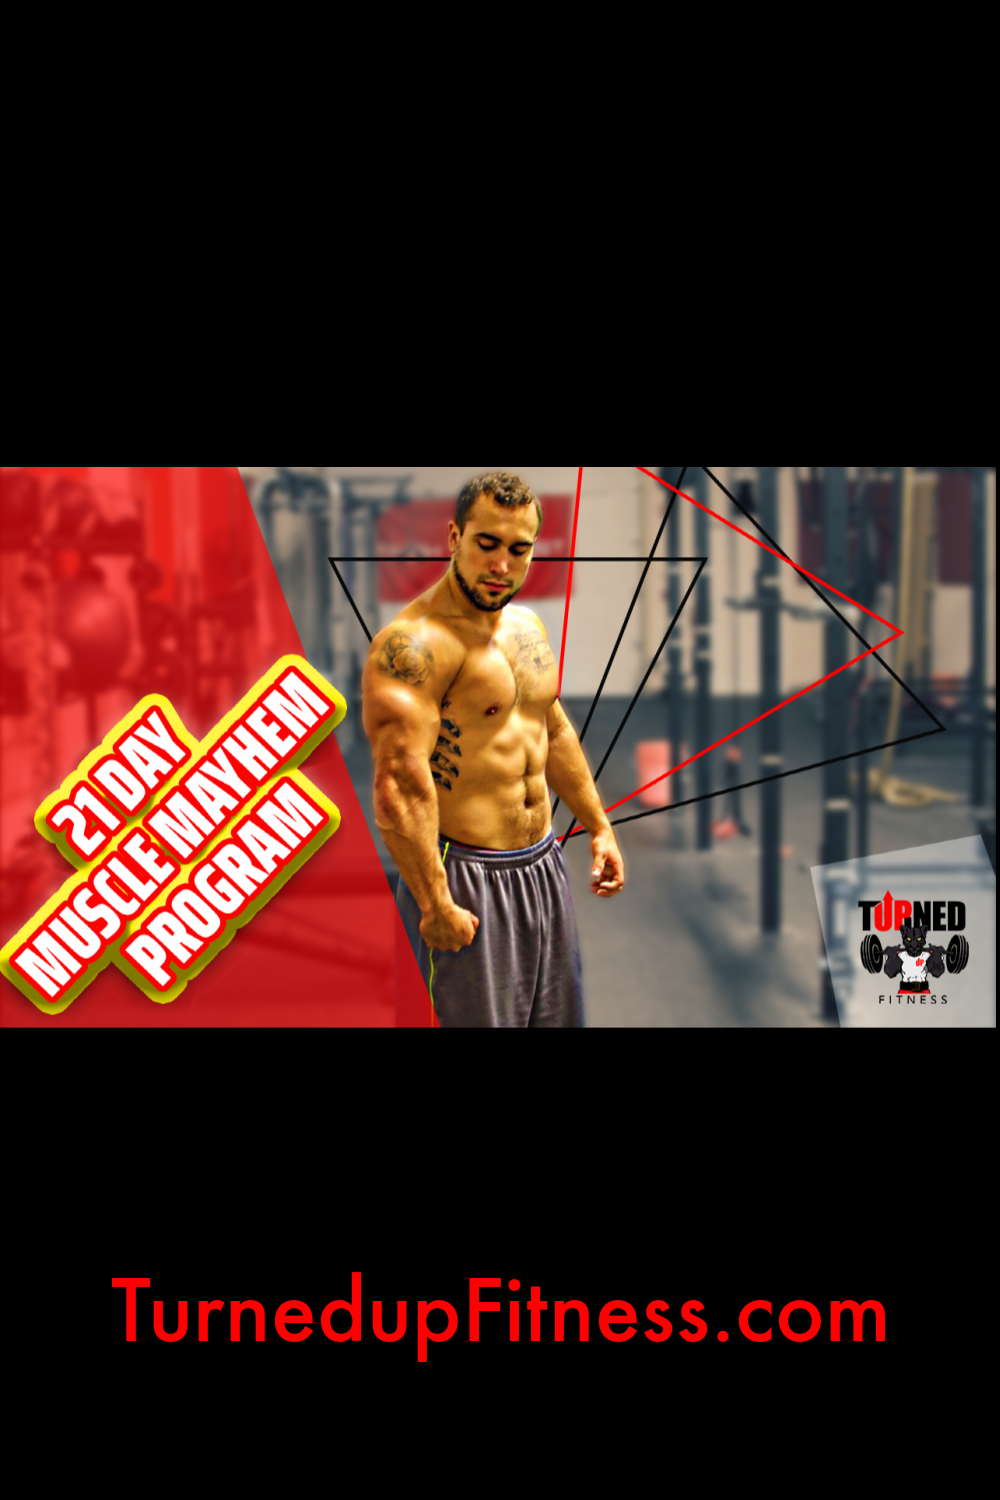 We Are Turnedup Fitness Join Our 21 Day Muscle Meyham Program When It Comes To Your Health And Wellness Goals You Wellness Goals Fun Workouts Fitness